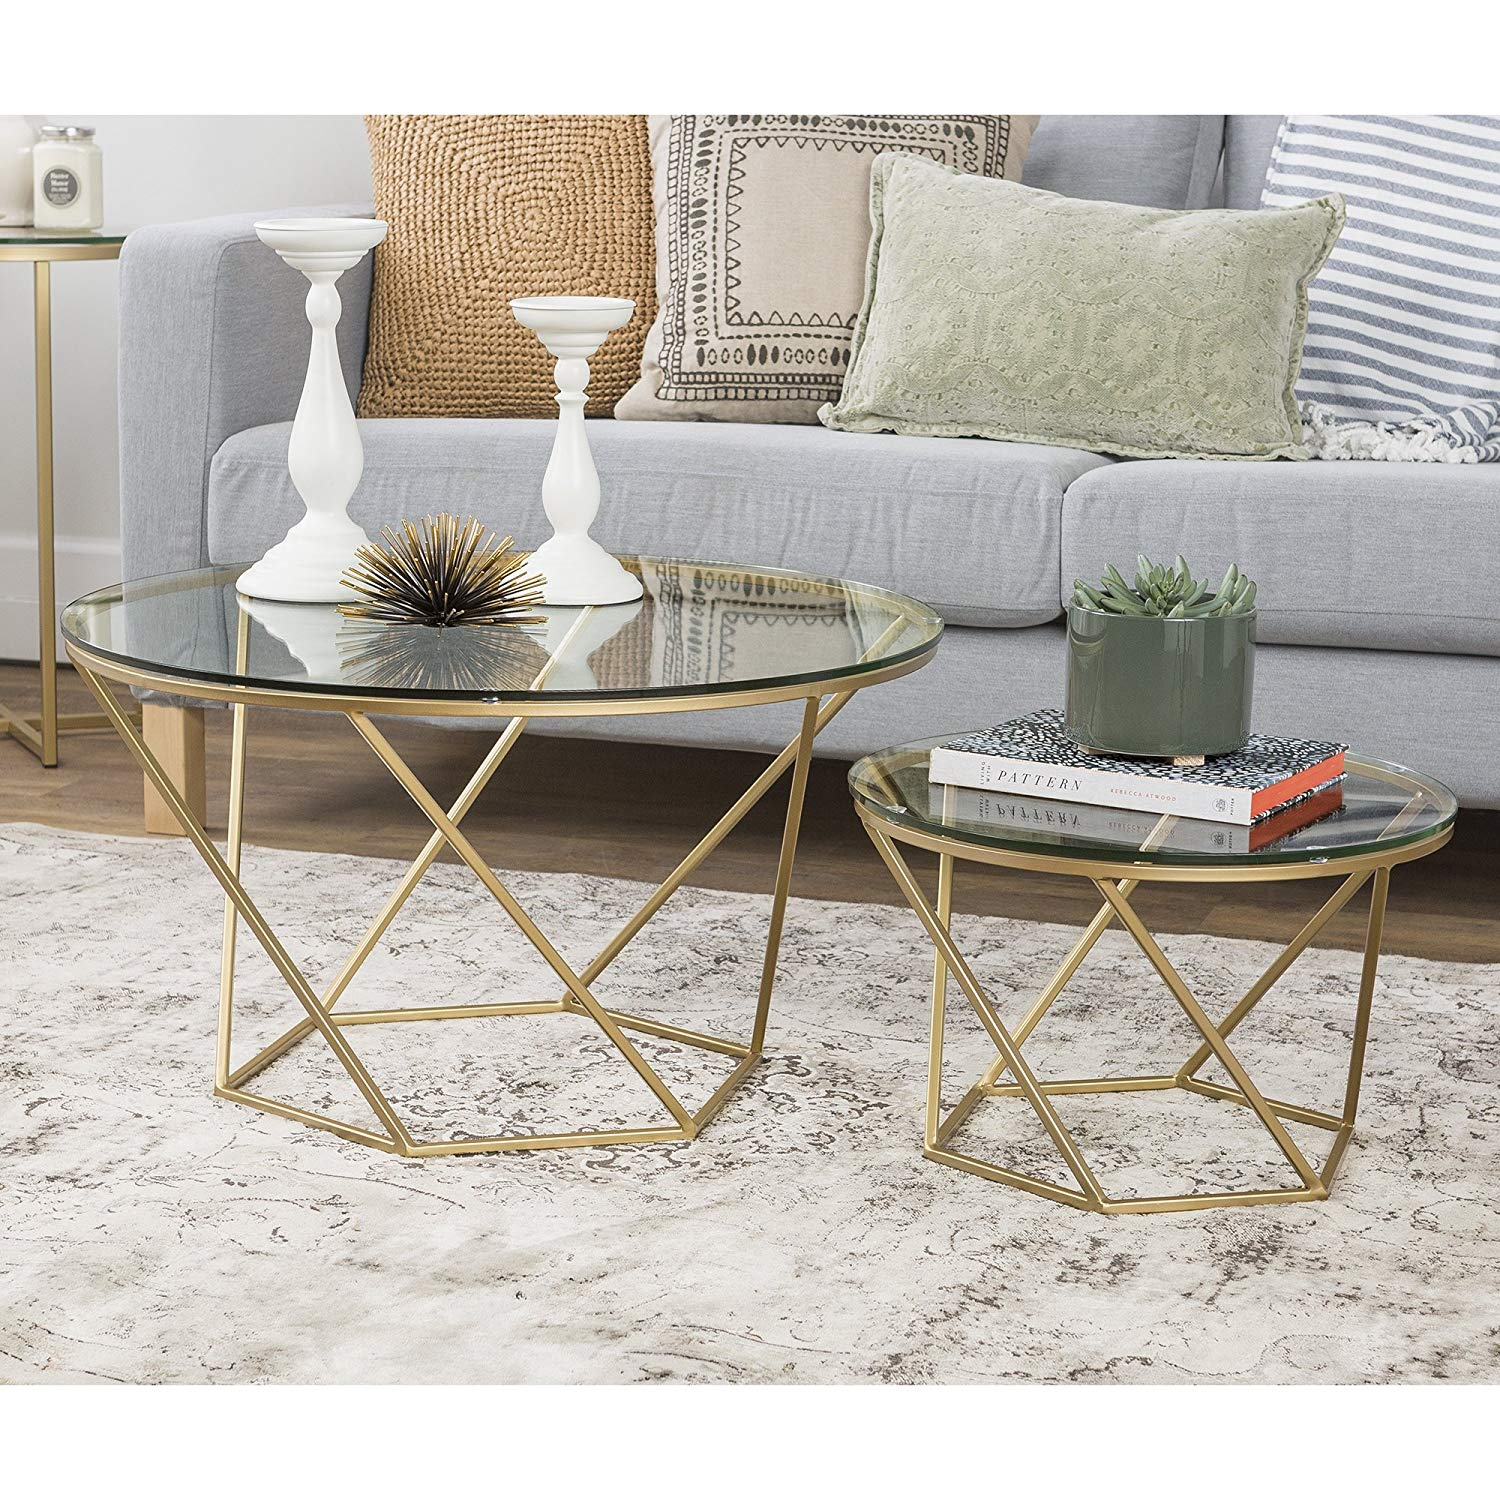 furniture geometric glass nesting coffee tables bxel accent table gold kitchen dining aluminium outdoor umbrella lights pier room hot pink end vintage home decor modern bedside